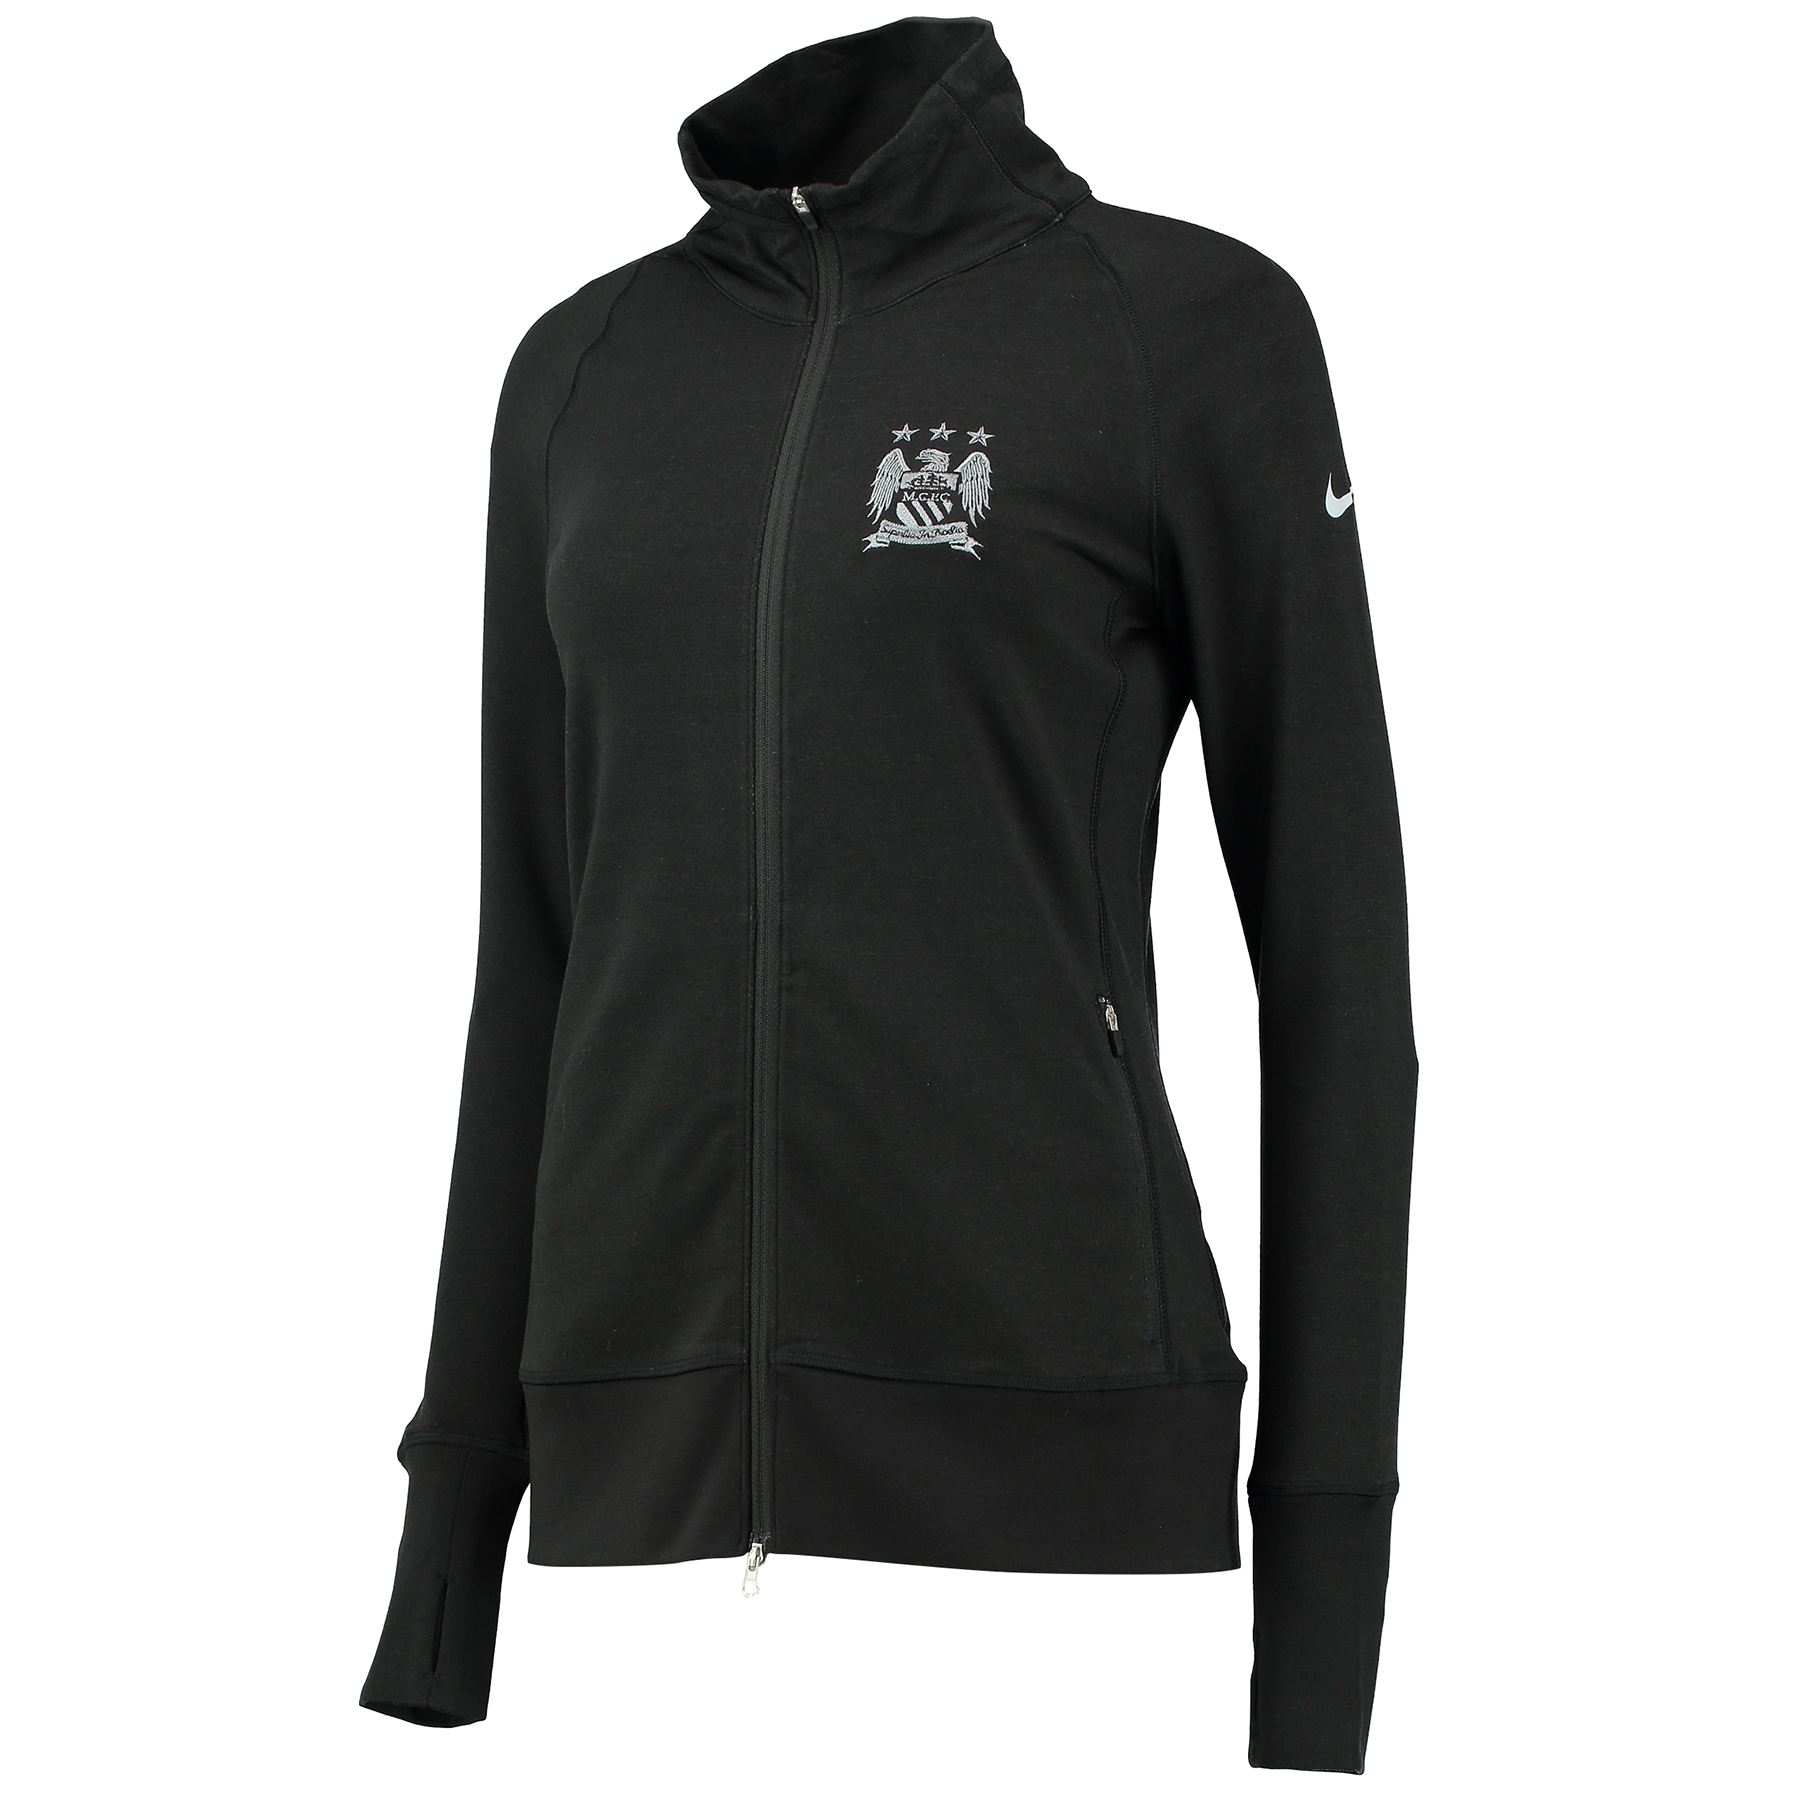 Manchester City Bunker Full Zip Jacket - Womens Black